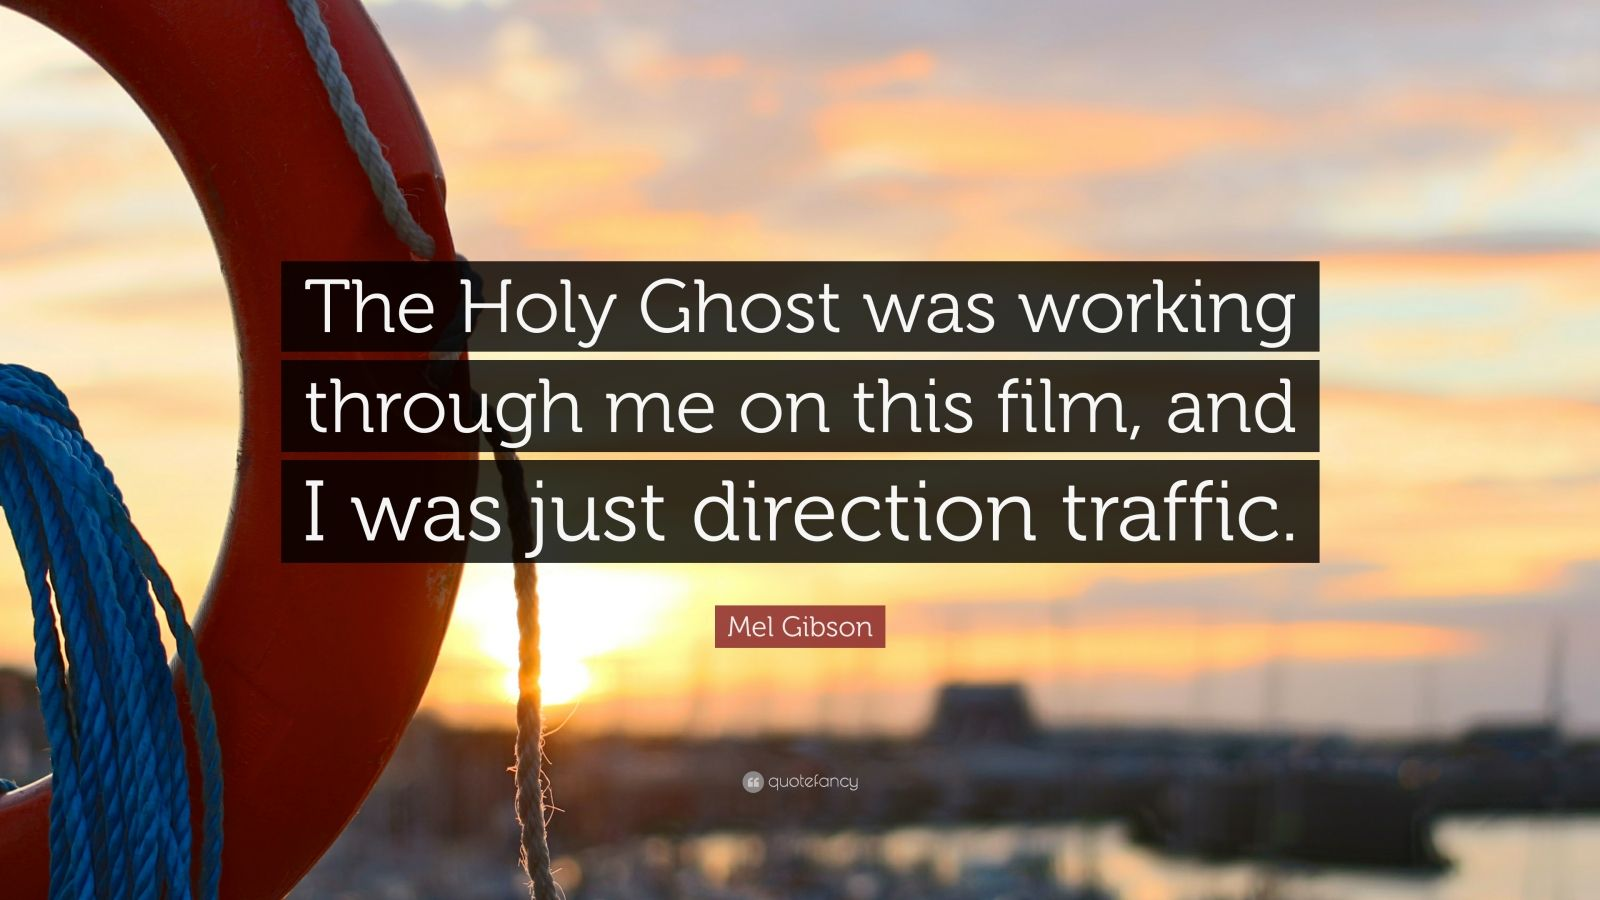 """Mel Gibson Quote: """"The Holy Ghost was working through me on this film, and I was just direction traffic."""""""